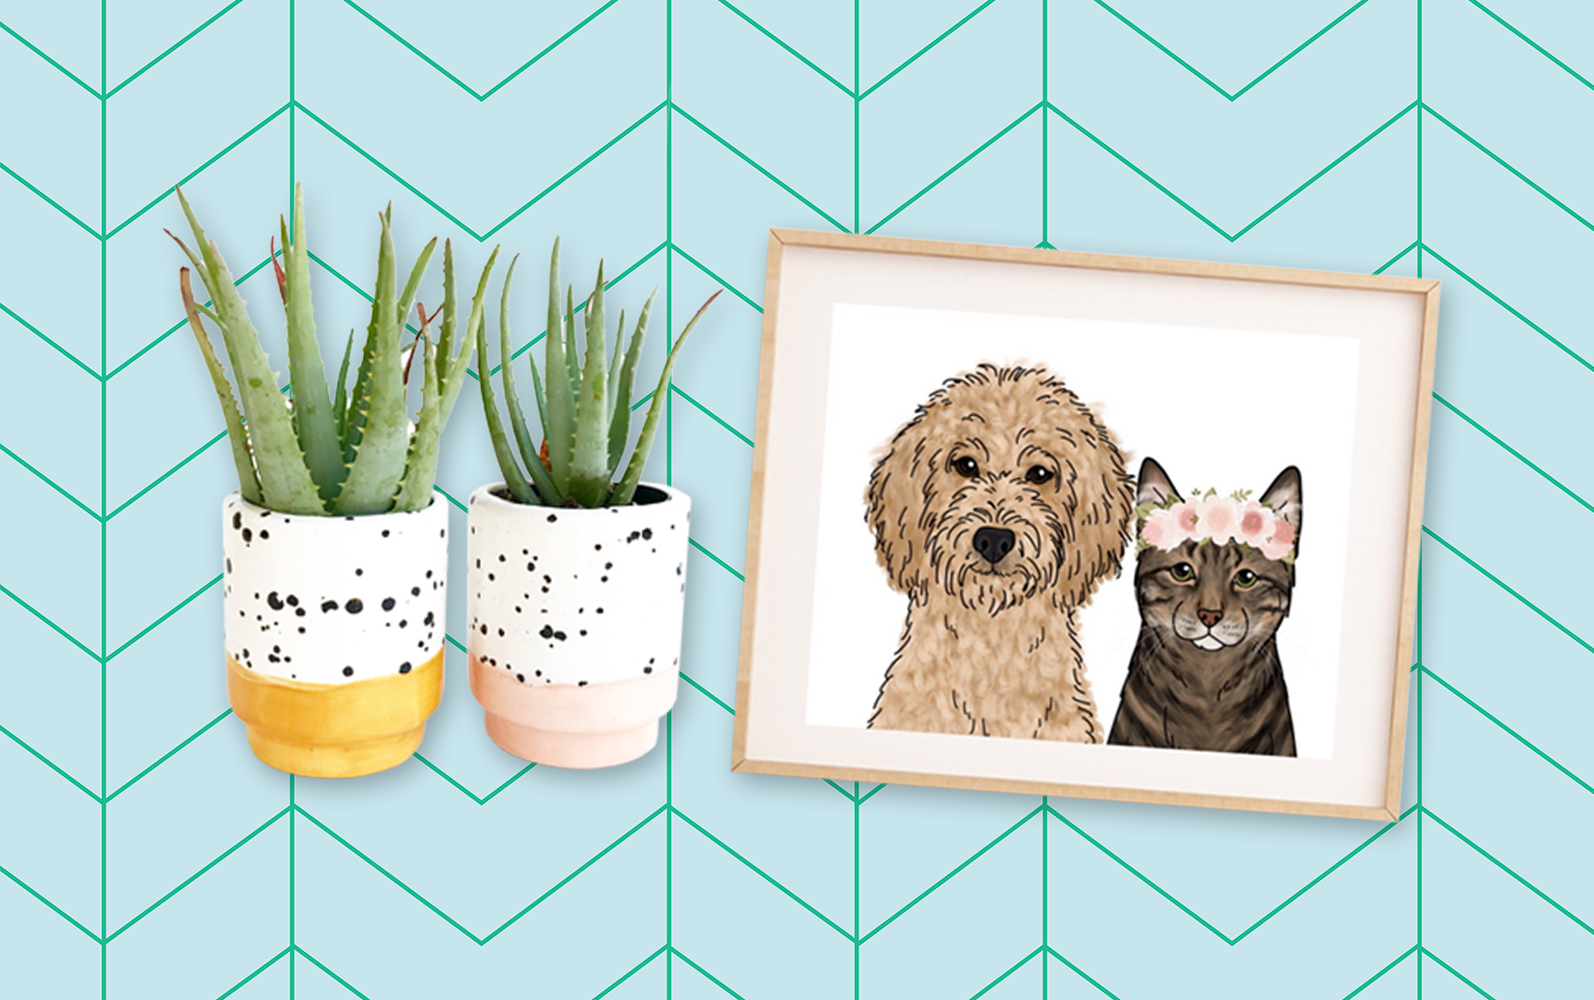 two white planters with succulents next to a framed pet portrait on a blue patterned background